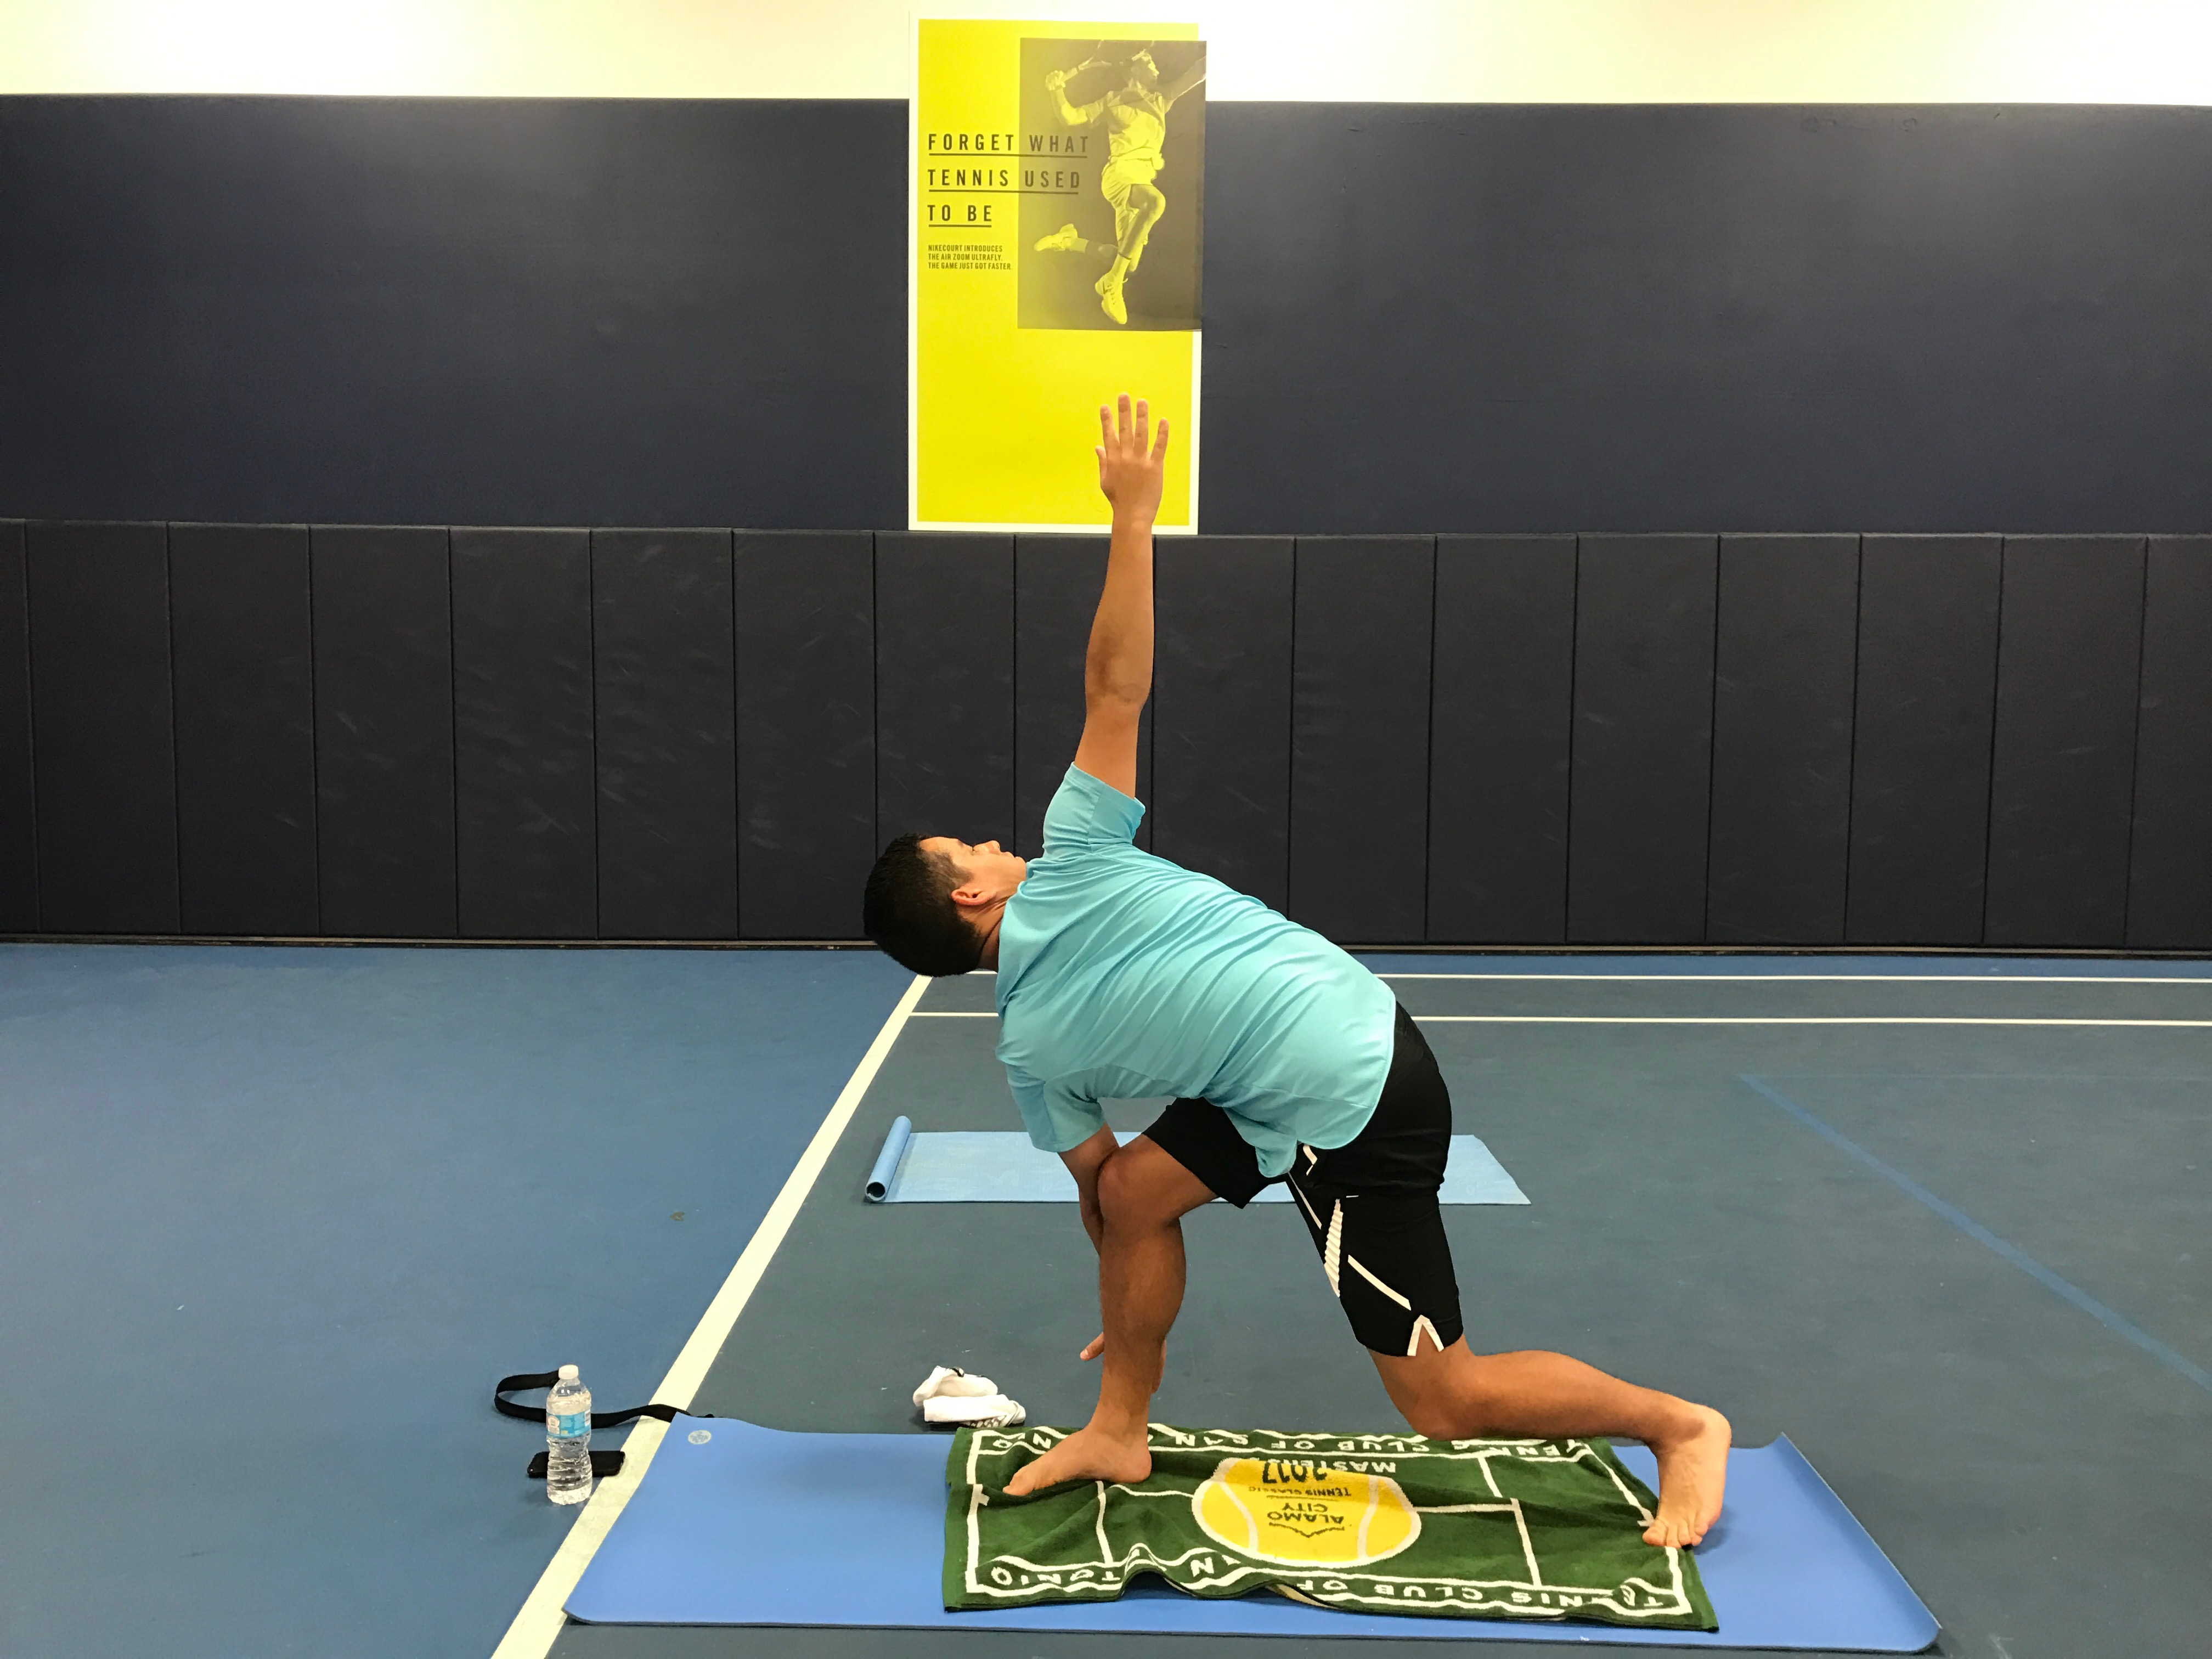 Tree and Triangle Pose on Court: Yoga for Tennis Revisited